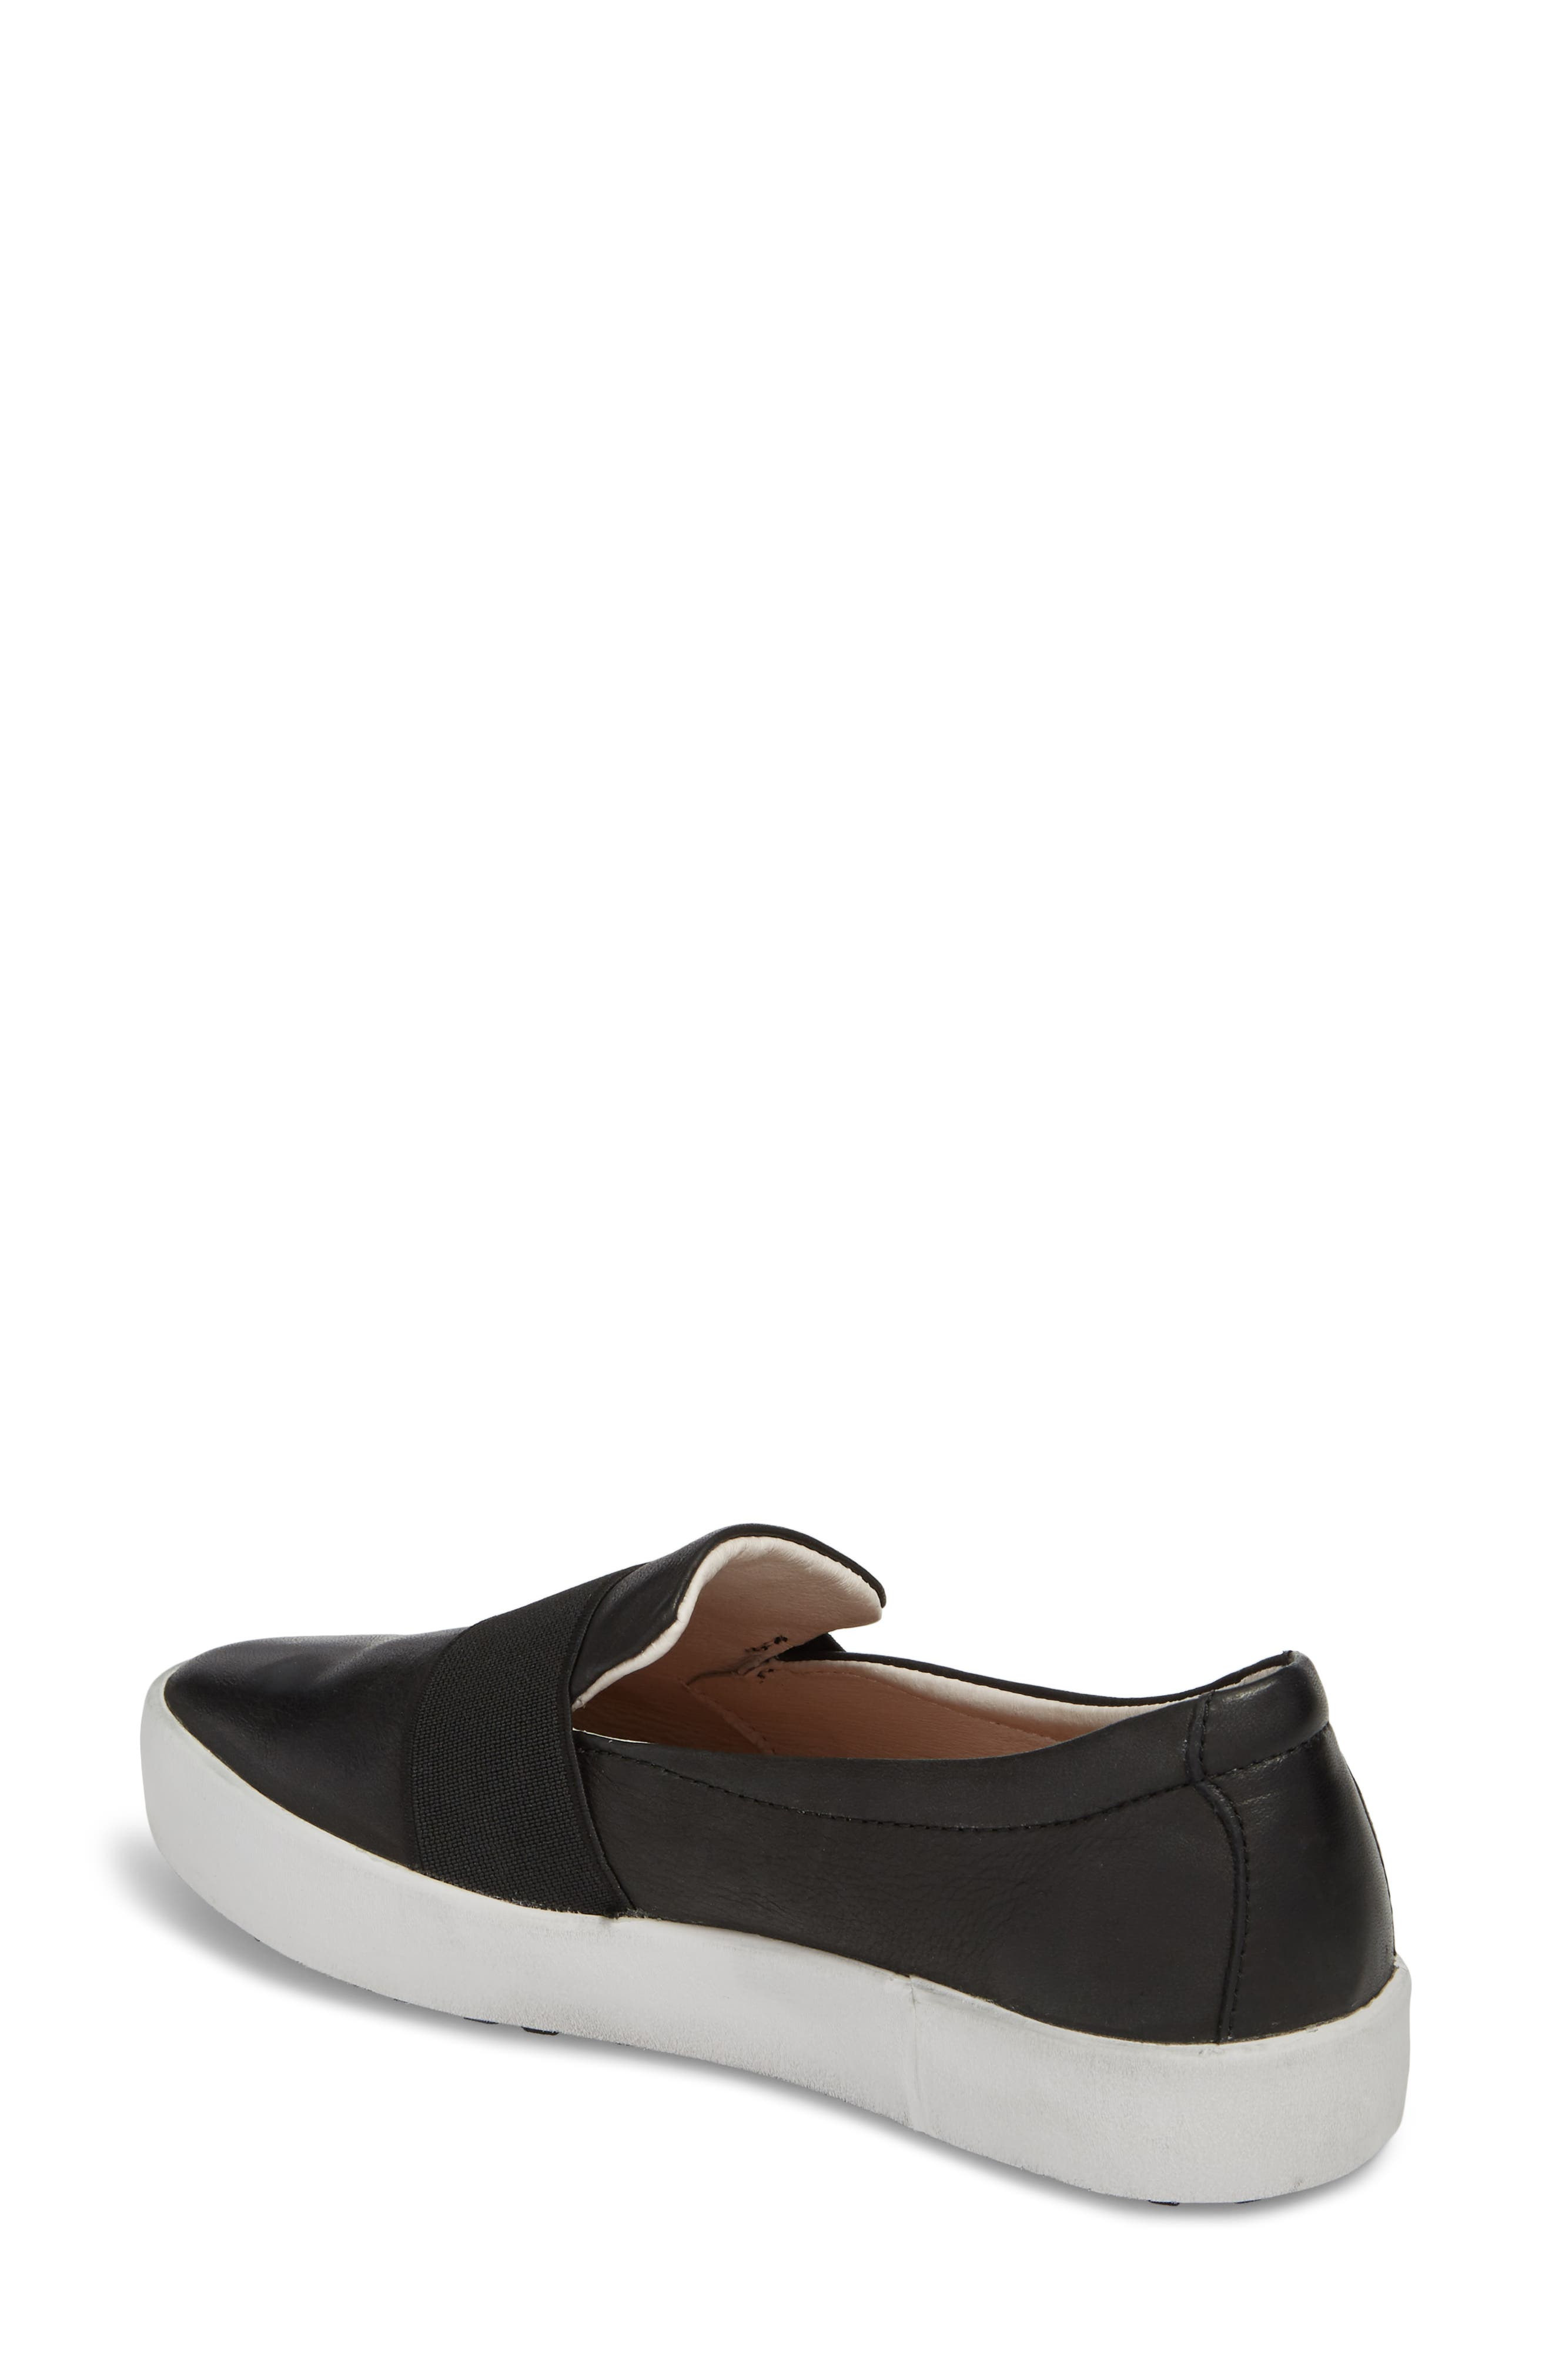 PL99 Slip-On Sneaker,                             Alternate thumbnail 2, color,                             BLACK LEATHER